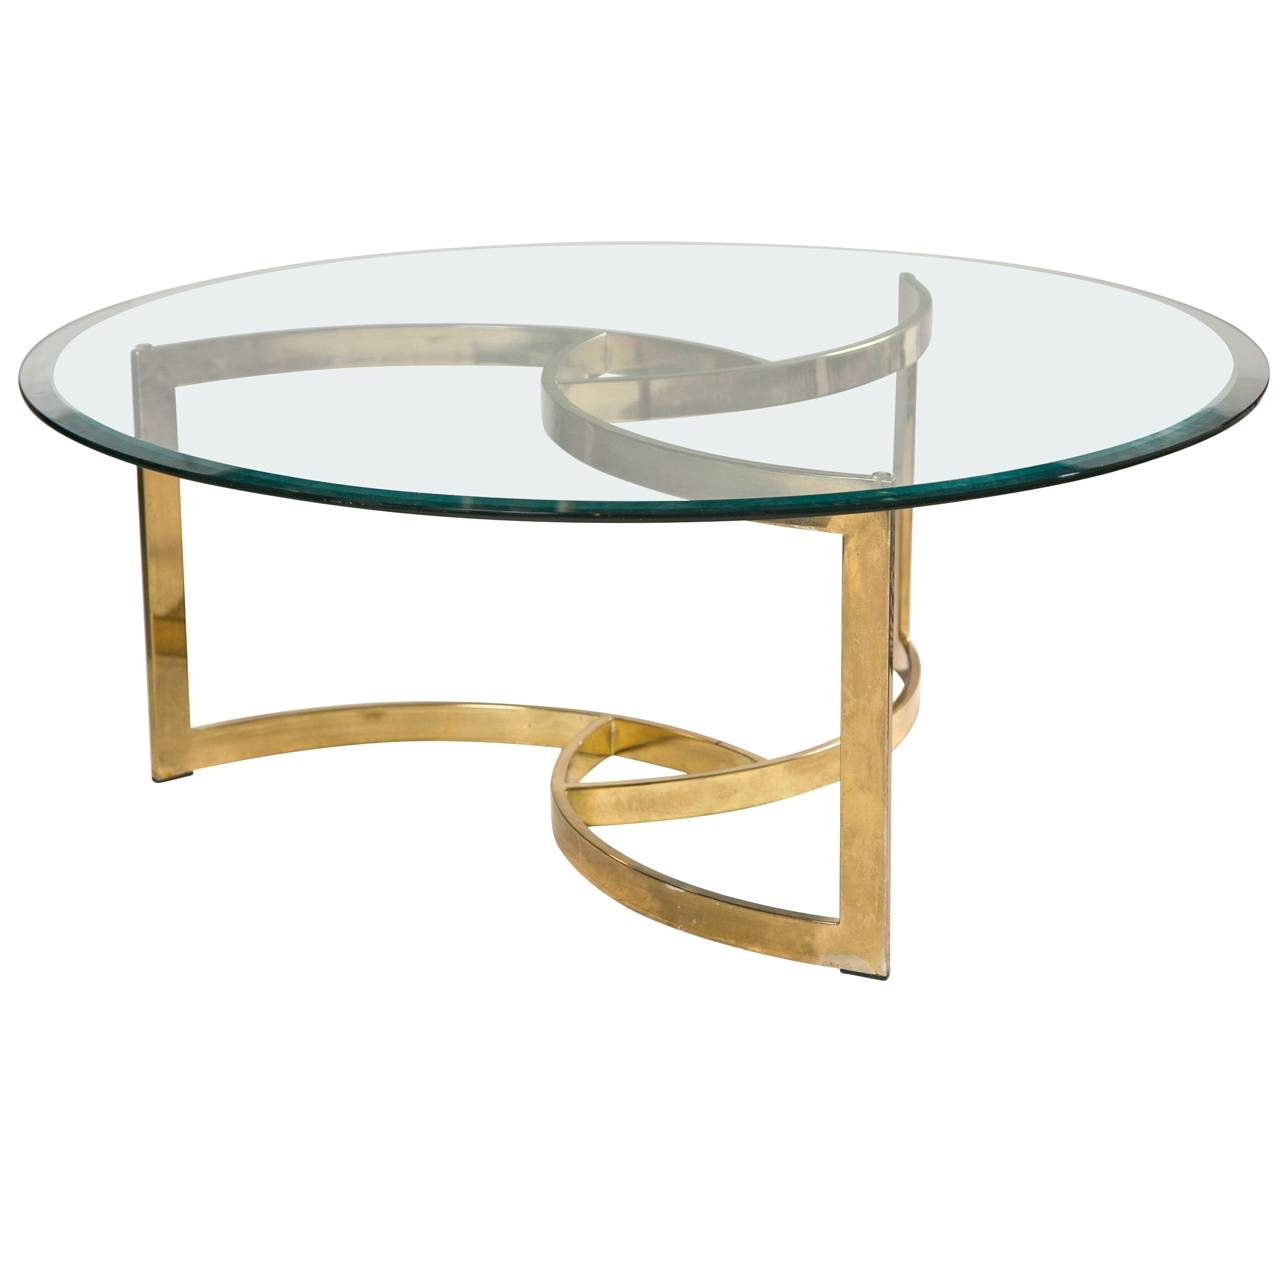 Fresh Antique Glass Top Coffee Table #24952 intended for Retro Glass Coffee Tables (Image 17 of 30)